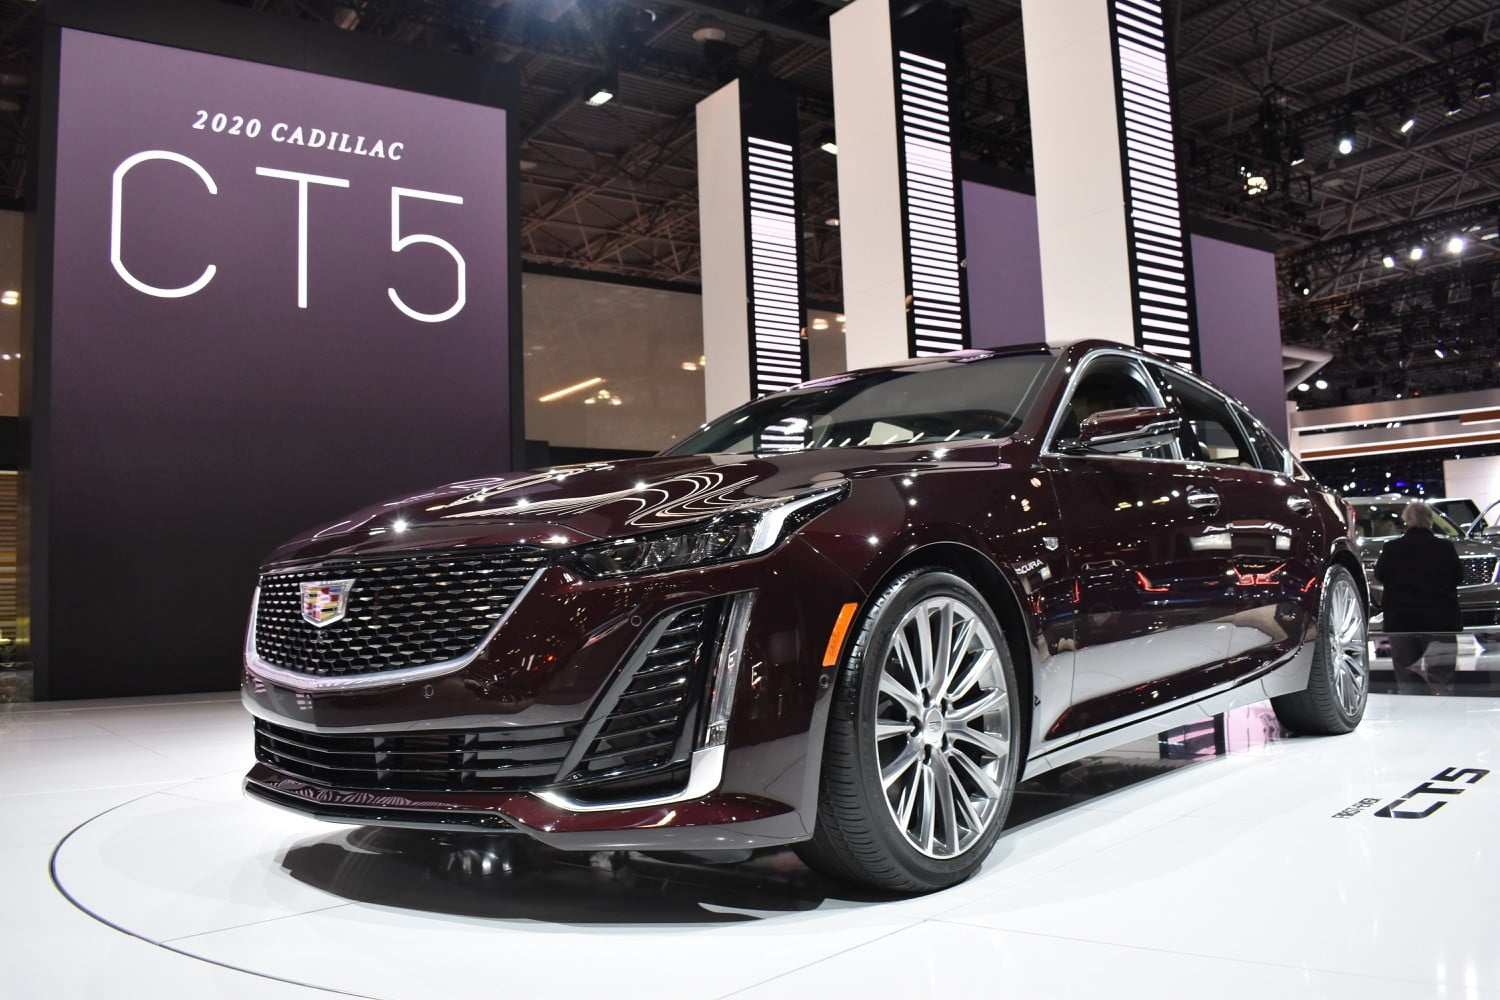 13 Best New Cadillac Sedans For 2020 Configurations